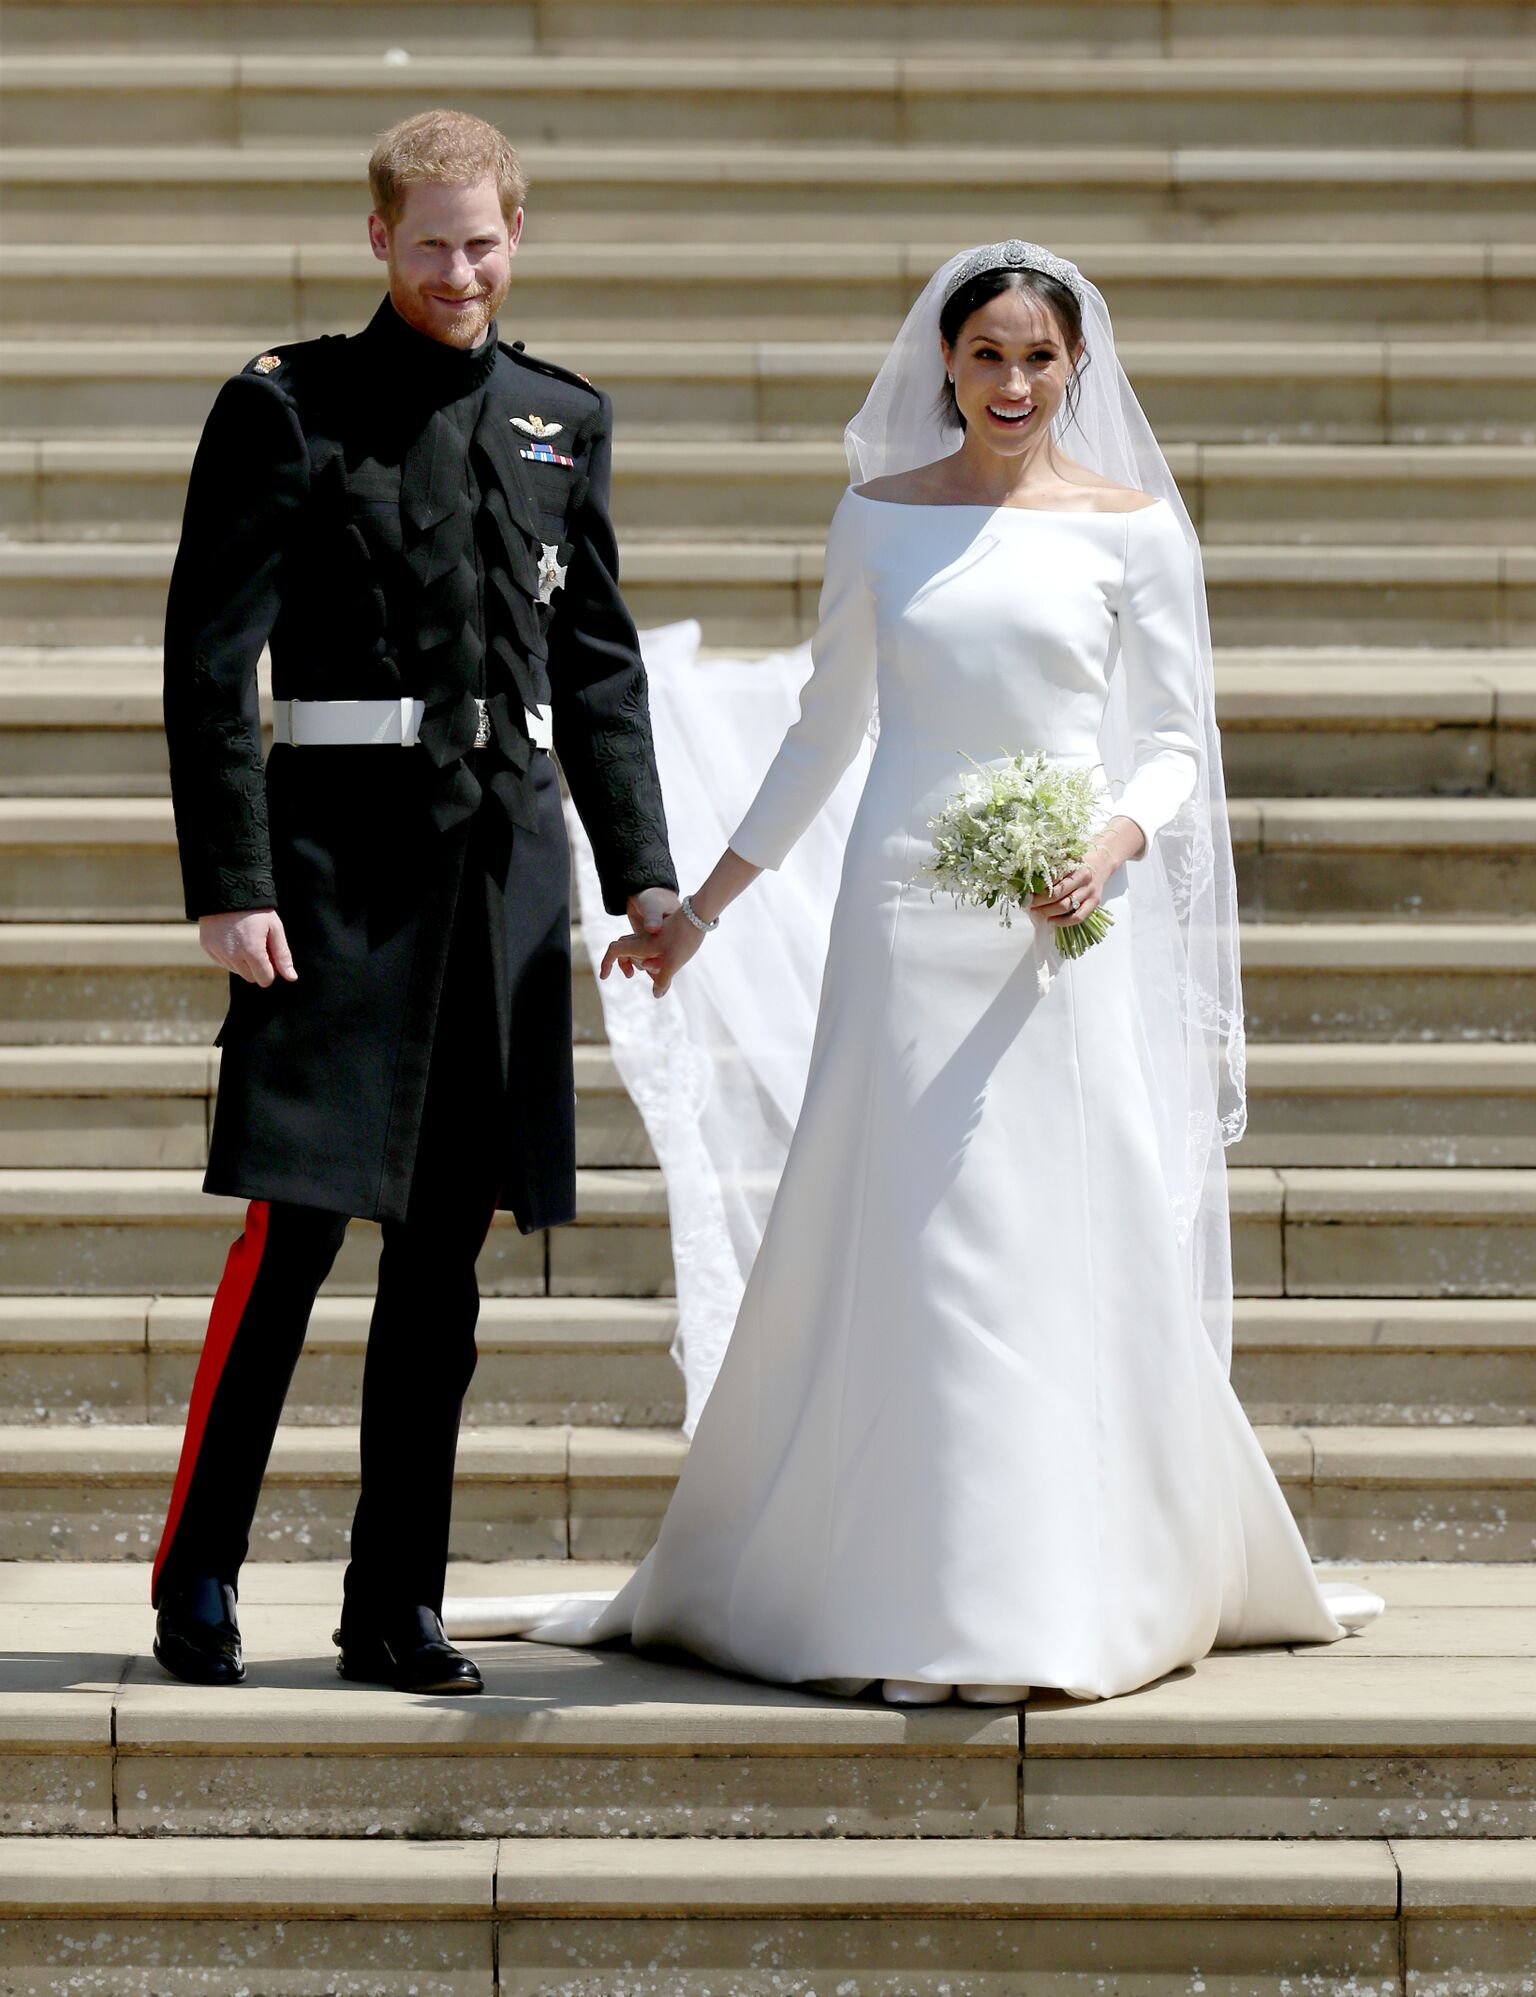 Meghan Markle et le Prince Harry le jour de leur mariage | Getty Images / Global Images Ukraine